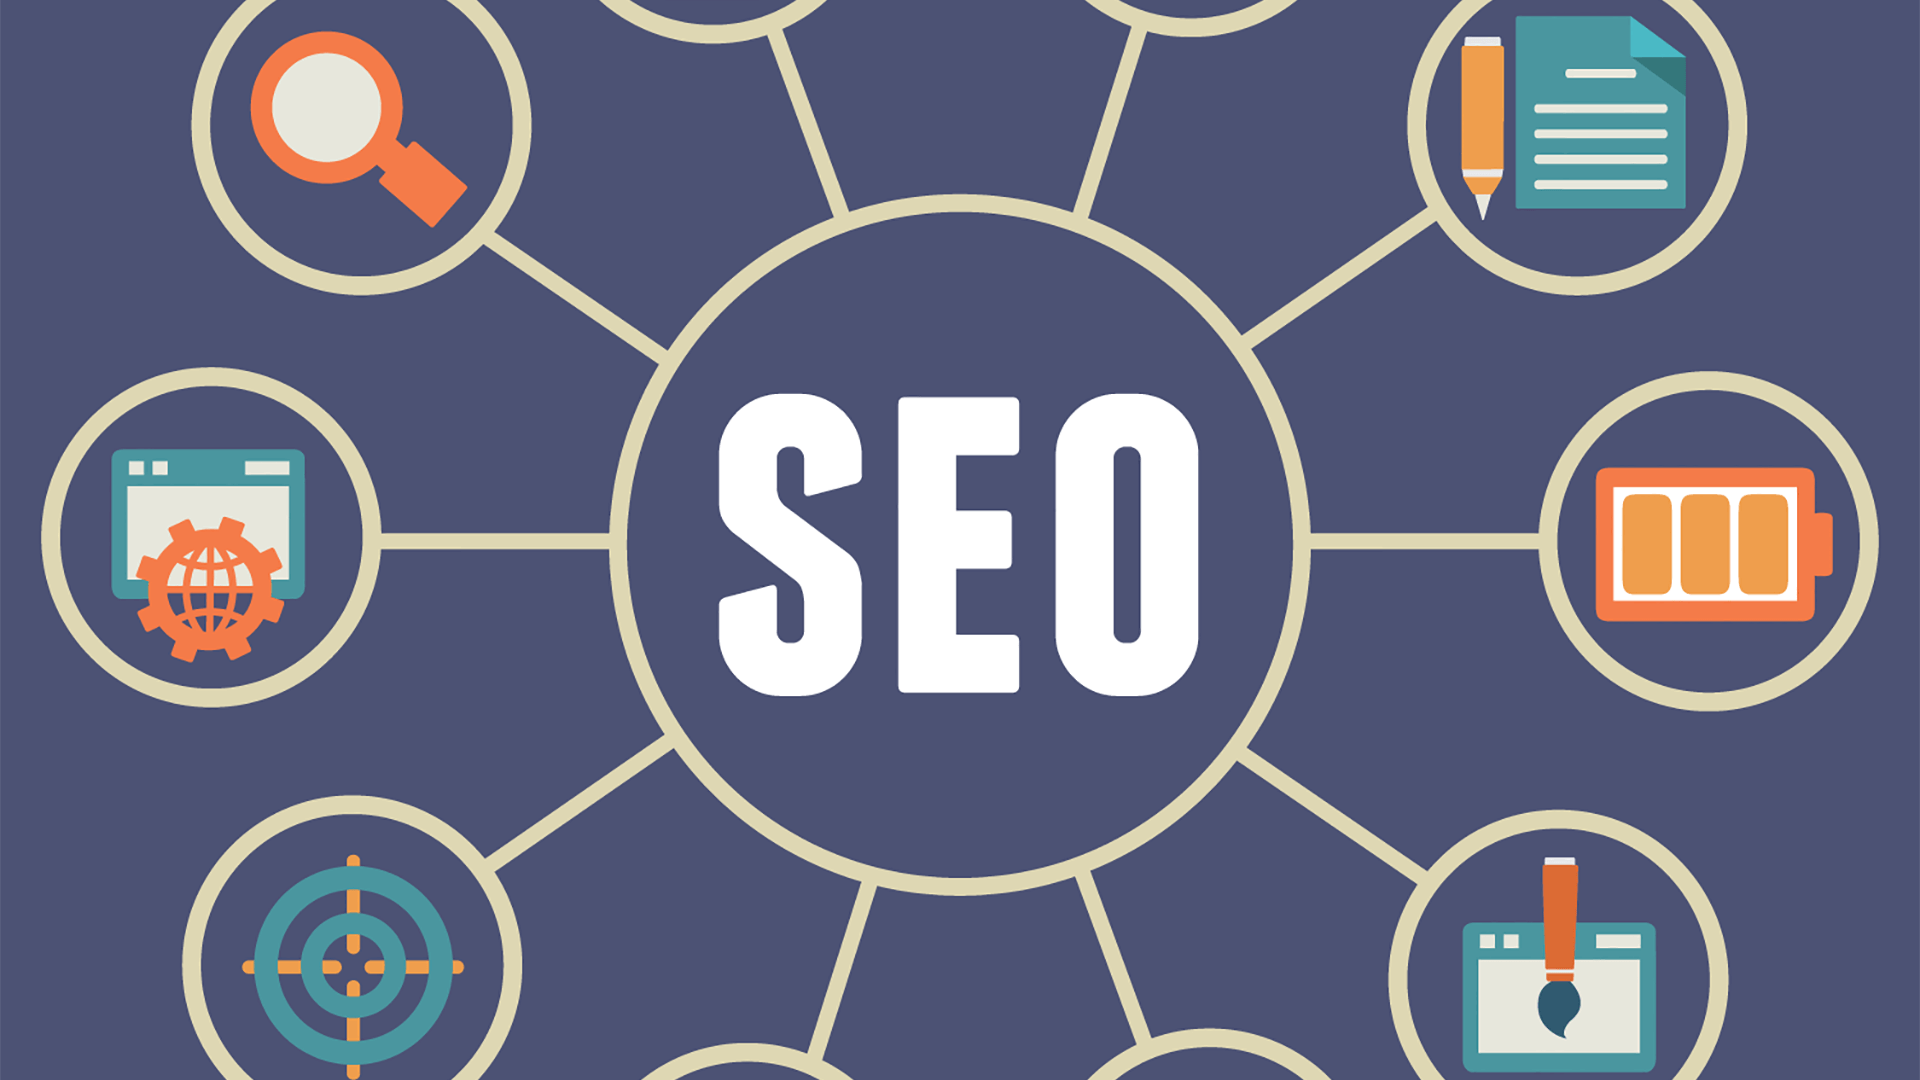 seo experts for your website